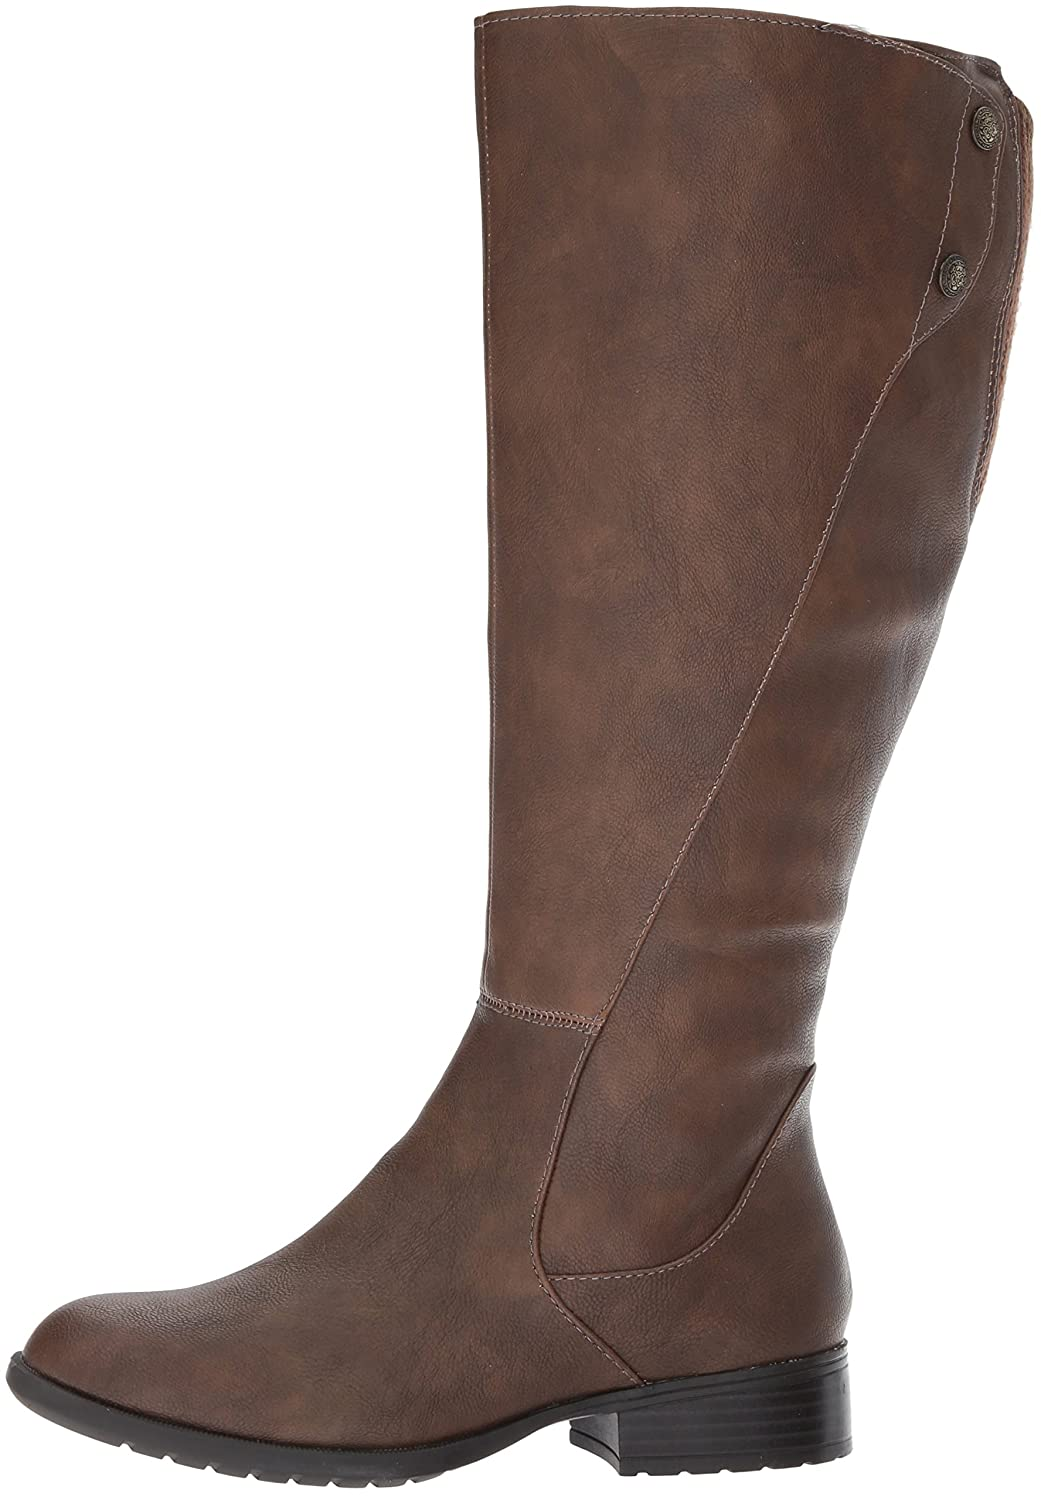 LifeStride Women's Xripley-Wc Riding Boot B071WVHVBD 6 W US|Dark Tan